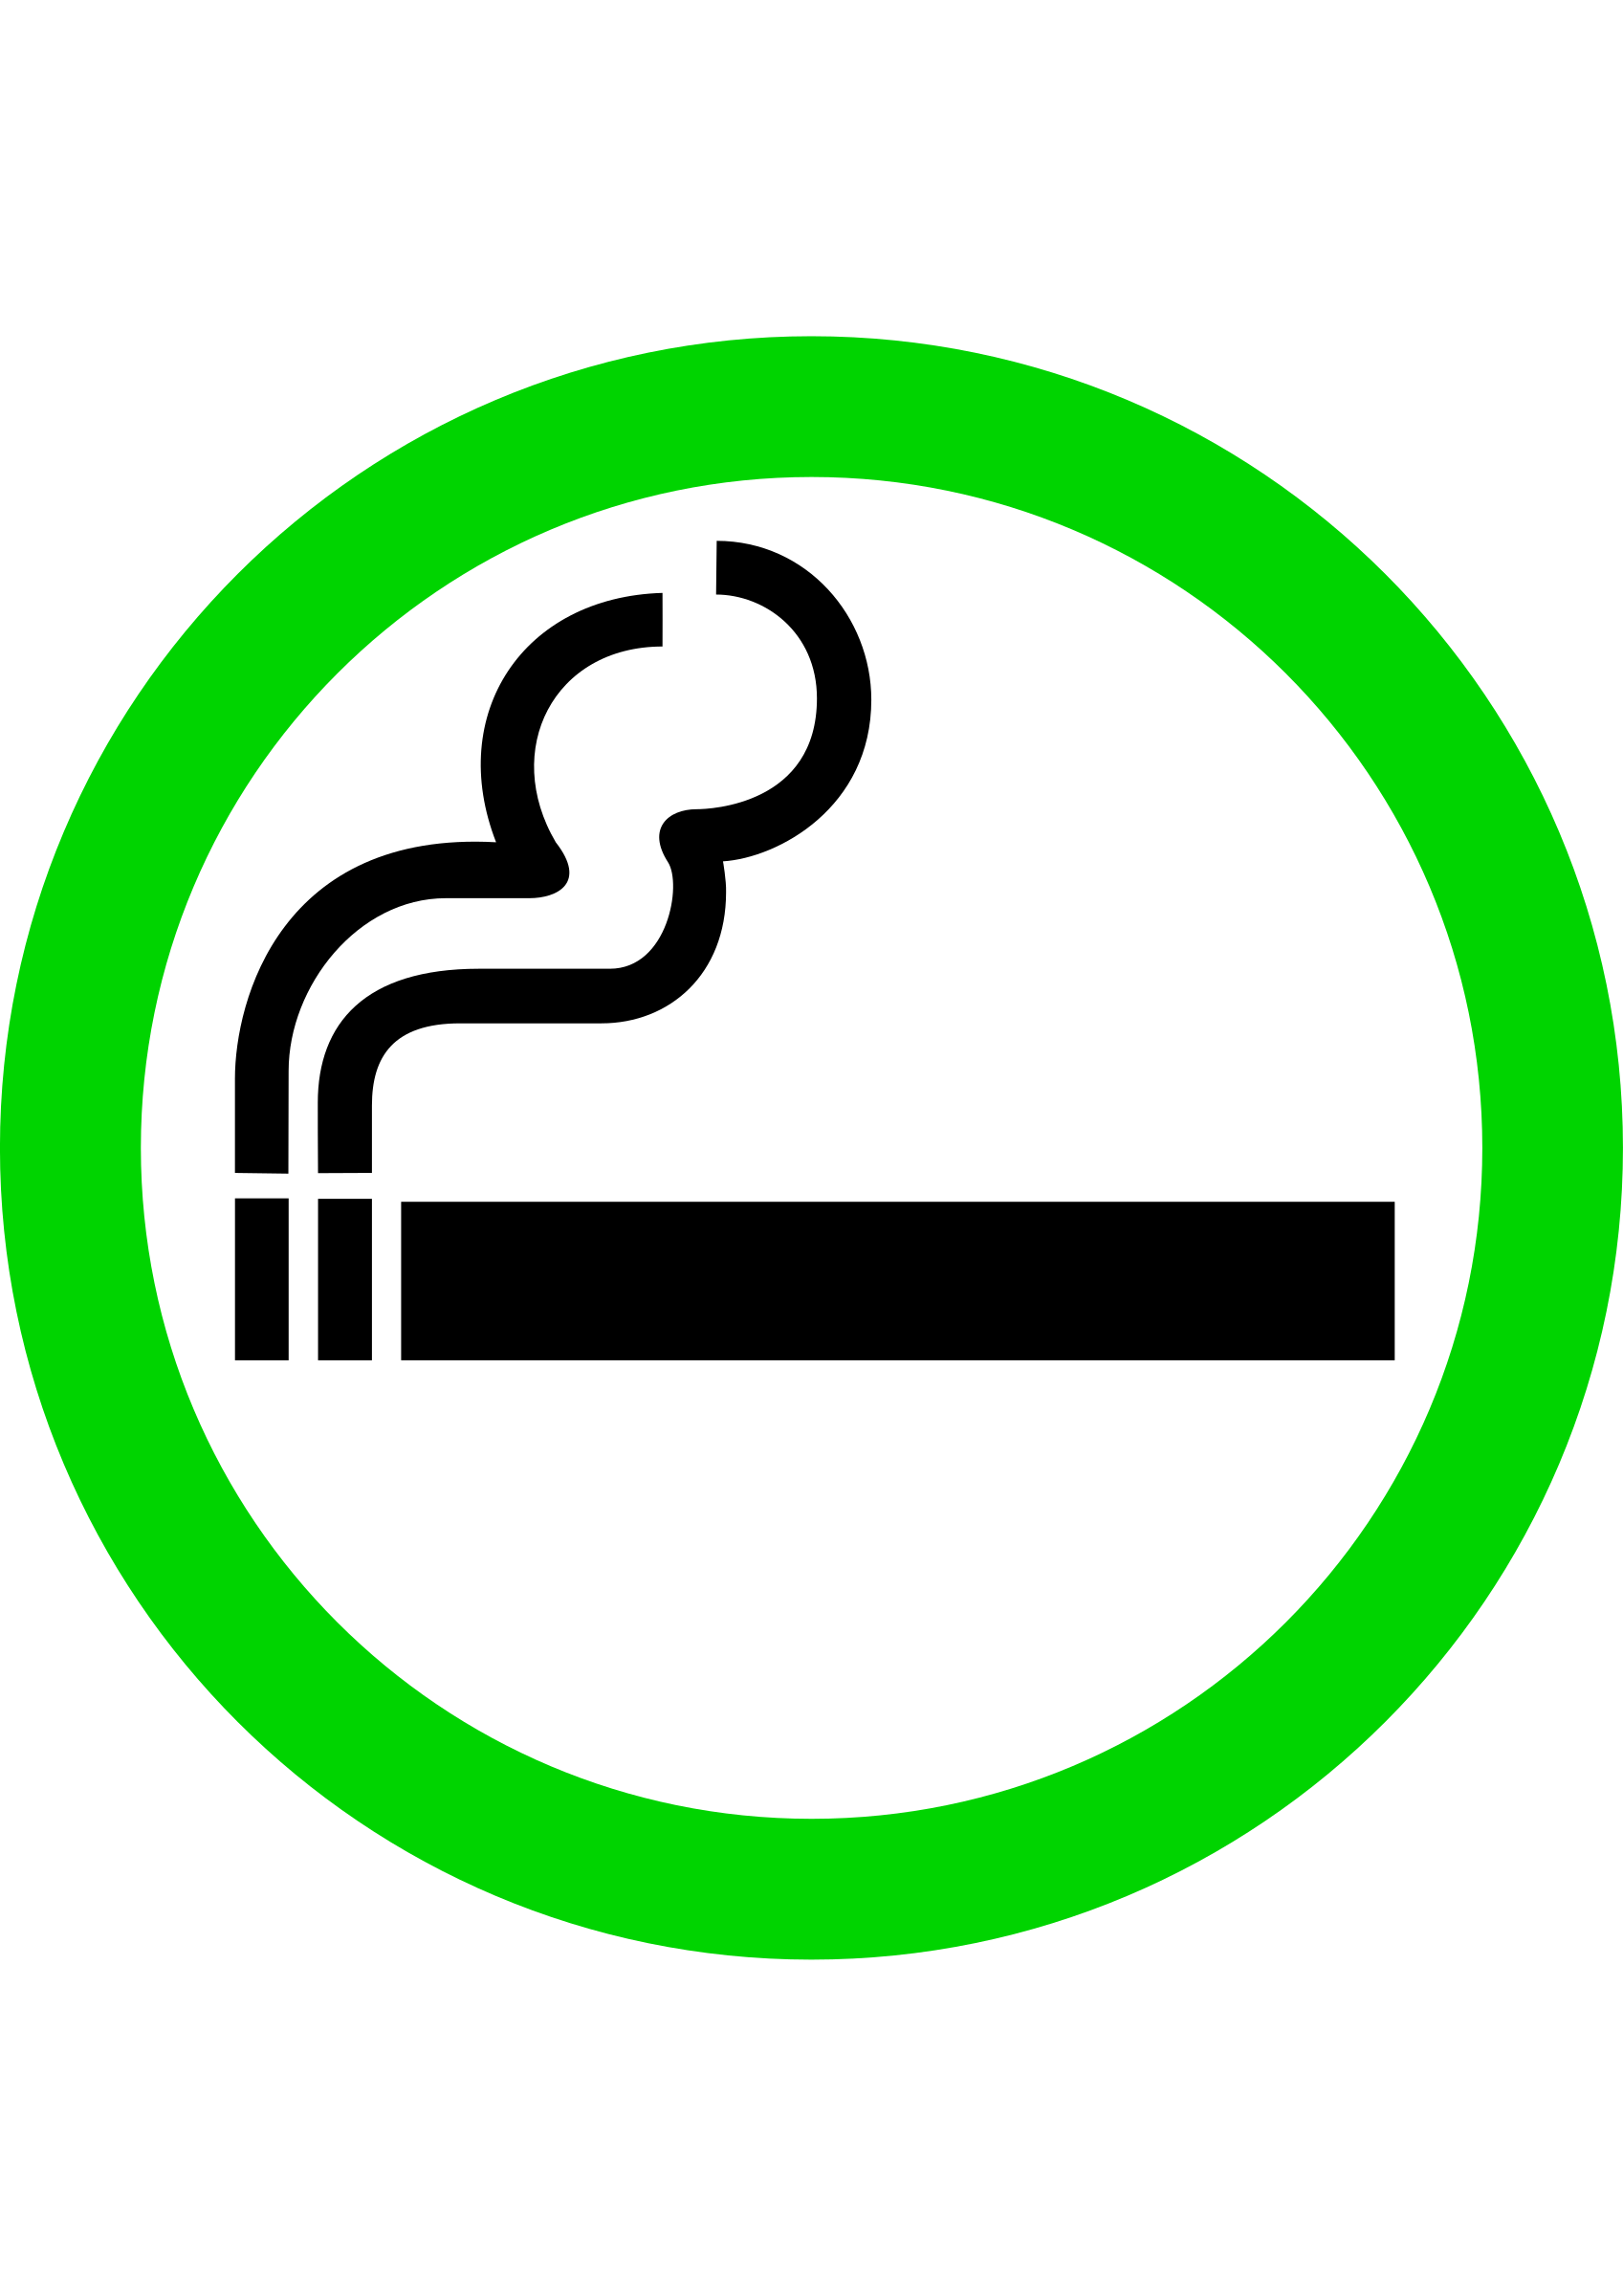 graphic royalty free Yes clipart symbol. Smoking area big image